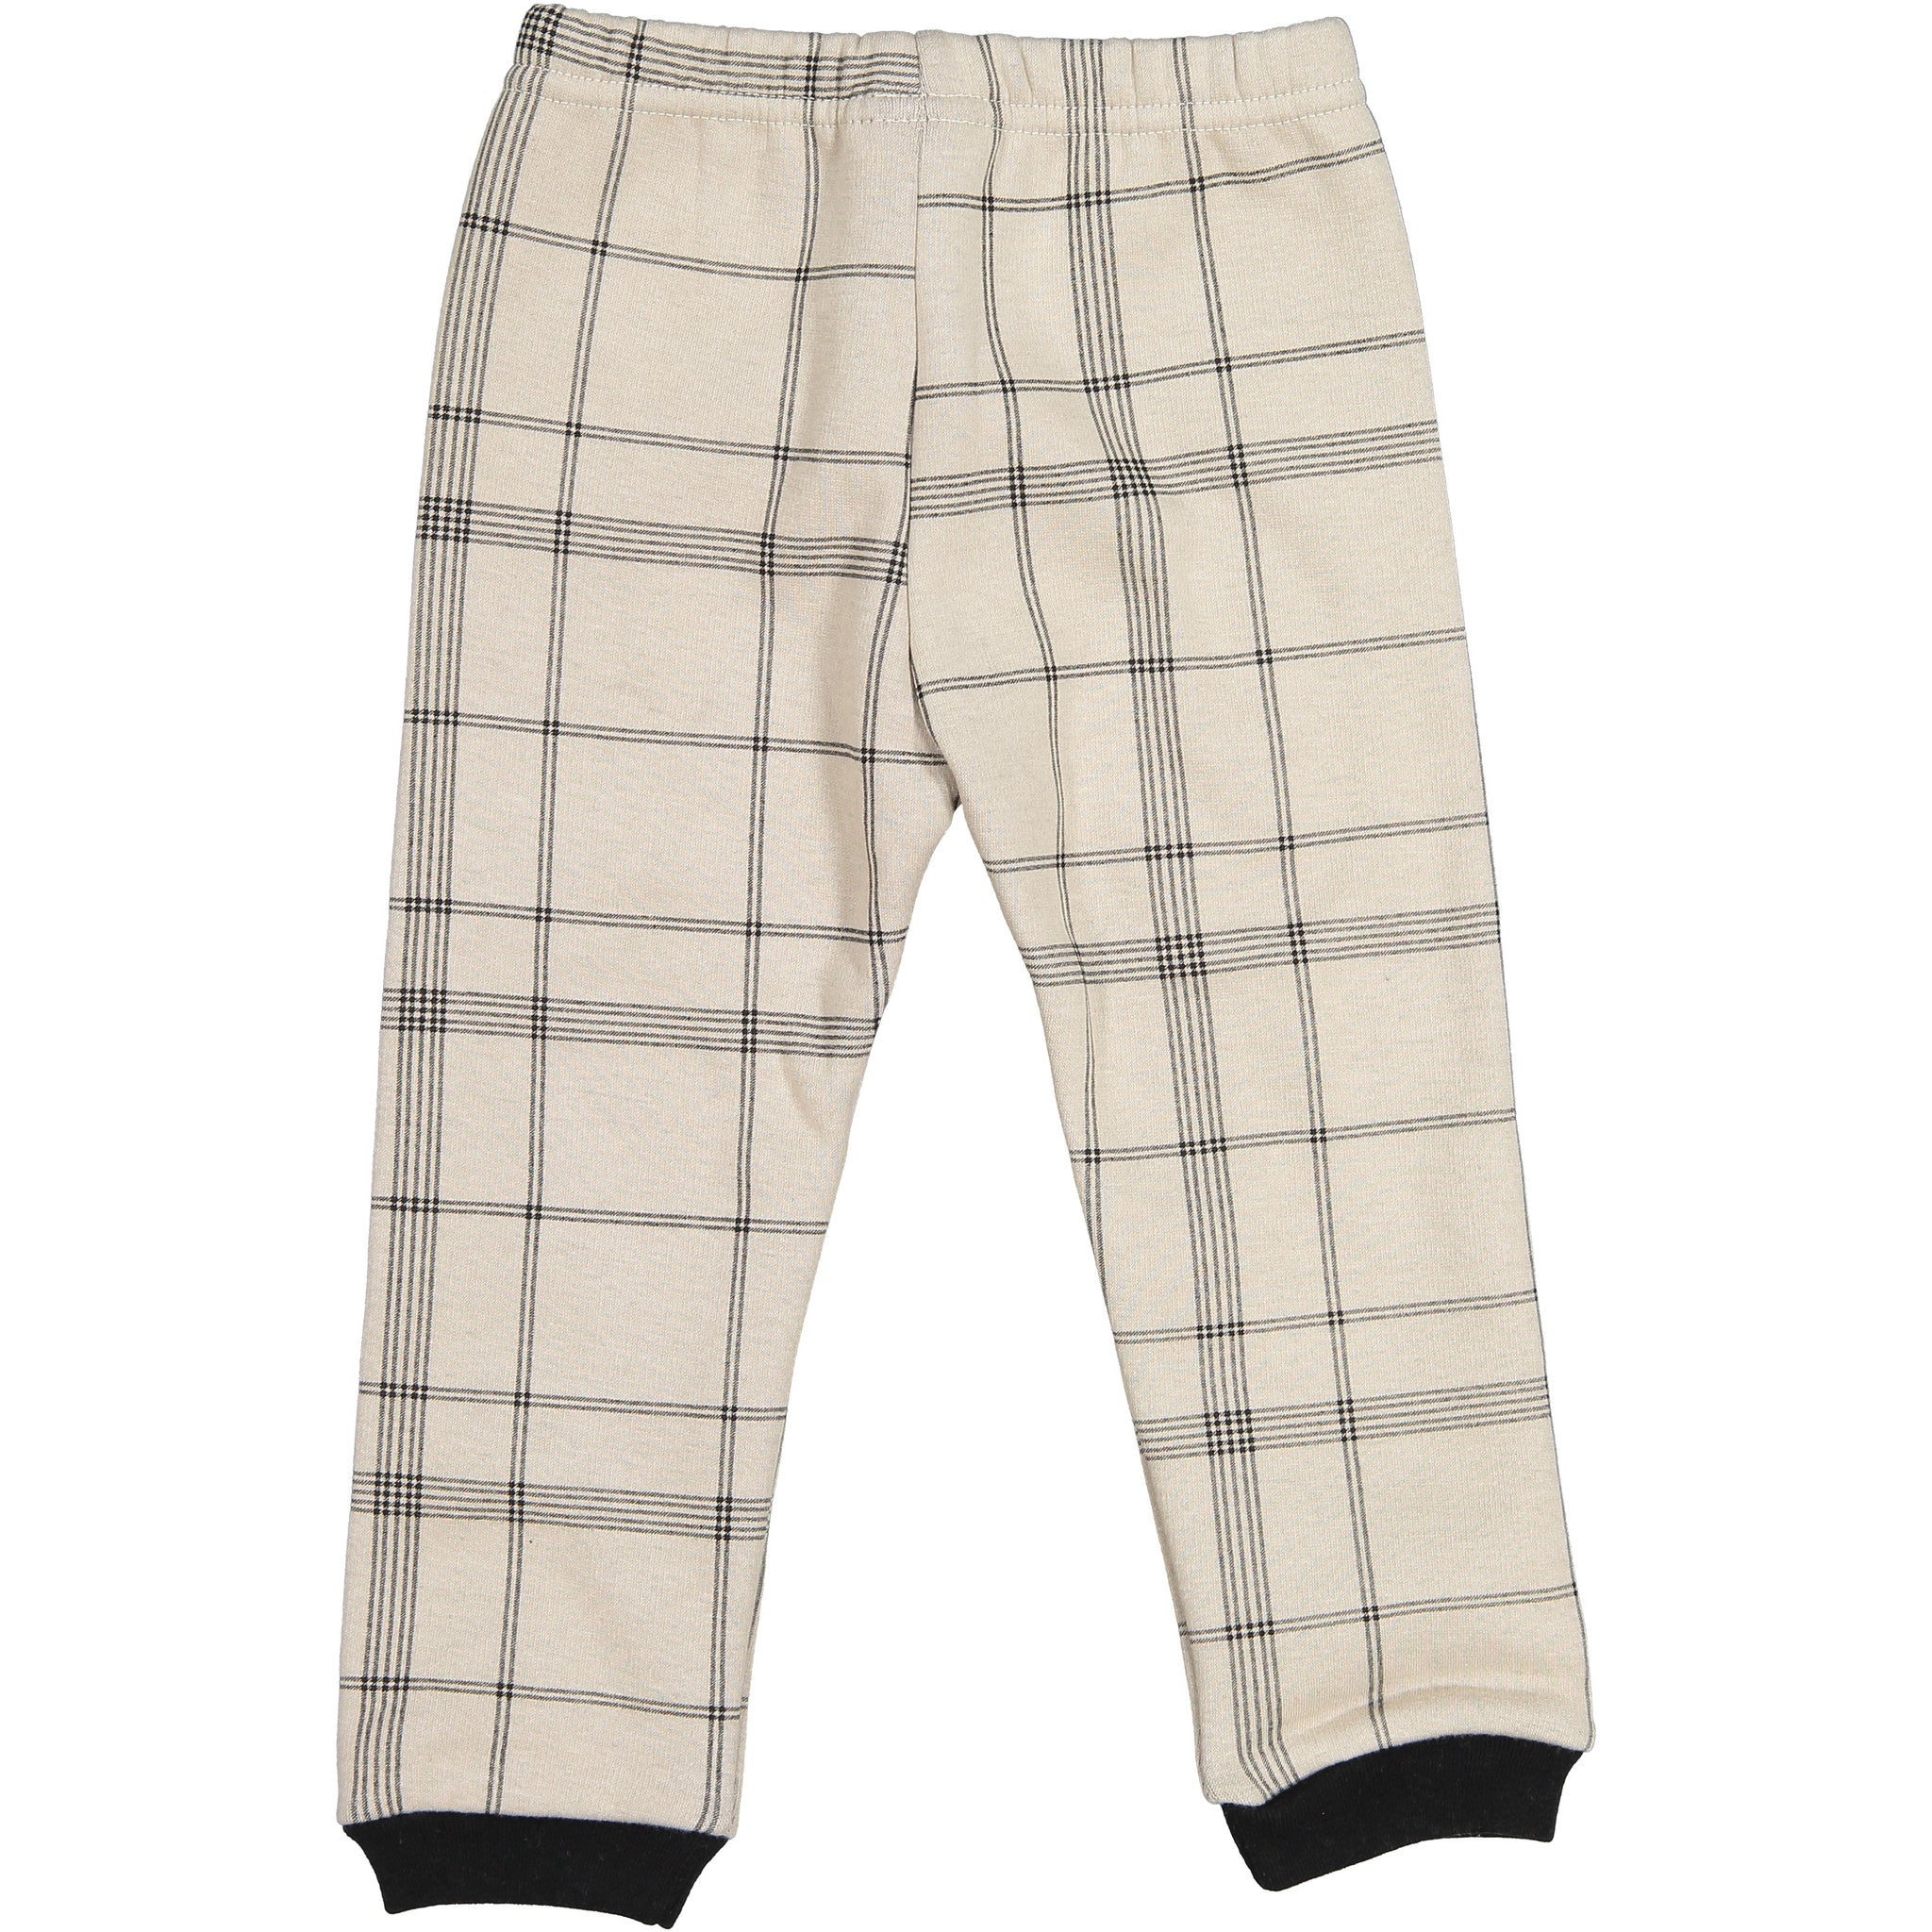 AE-HEM Beige Check Napping Loungewear - Ladida